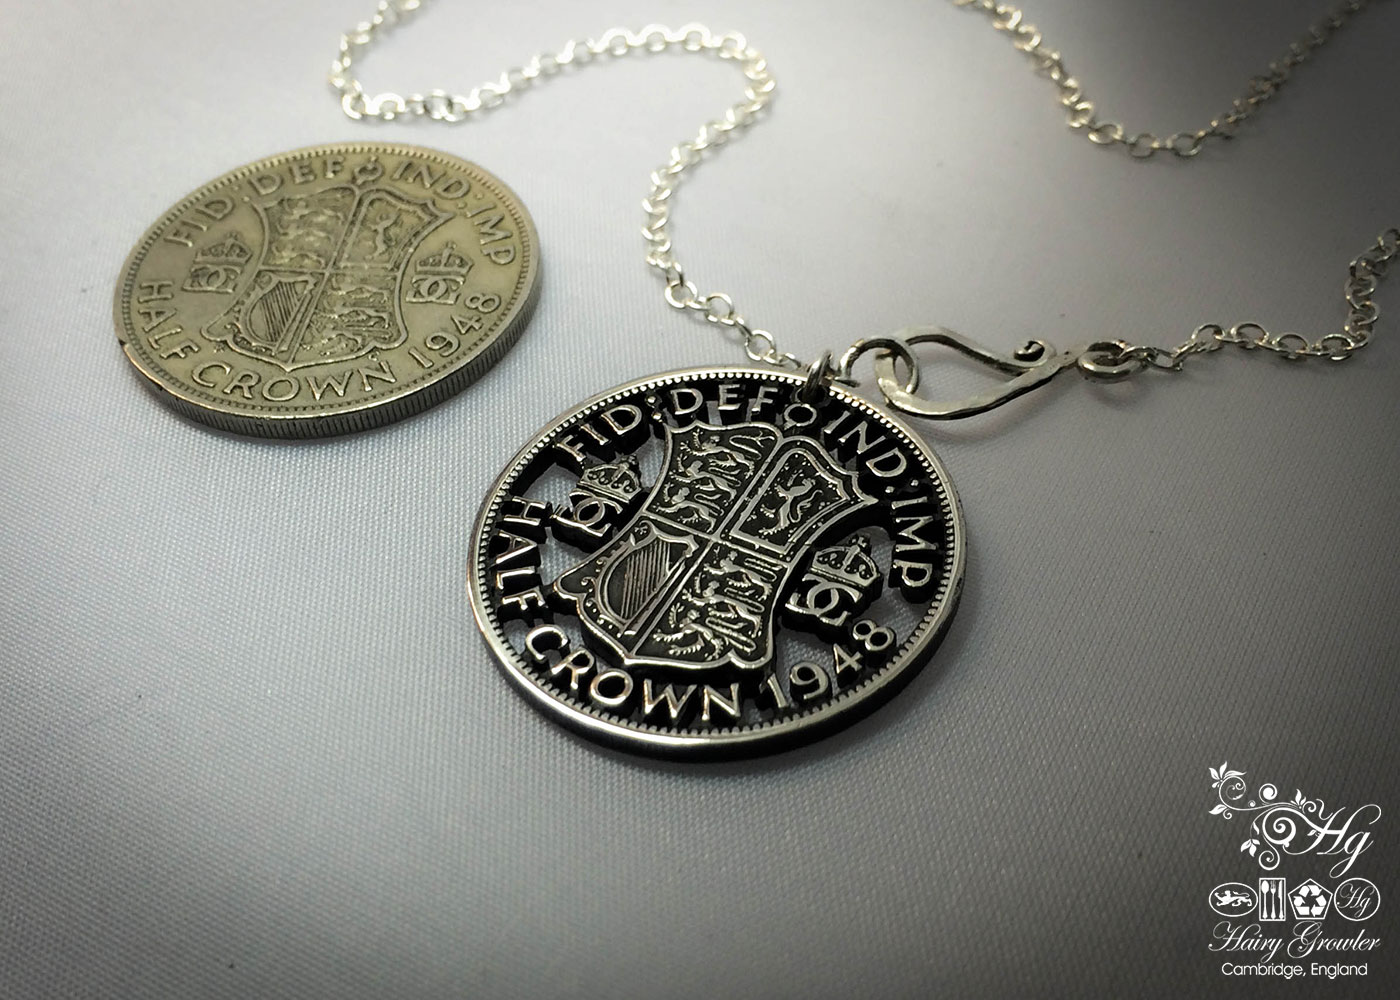 Handmade and upcycled half crown coin brooch or pendant